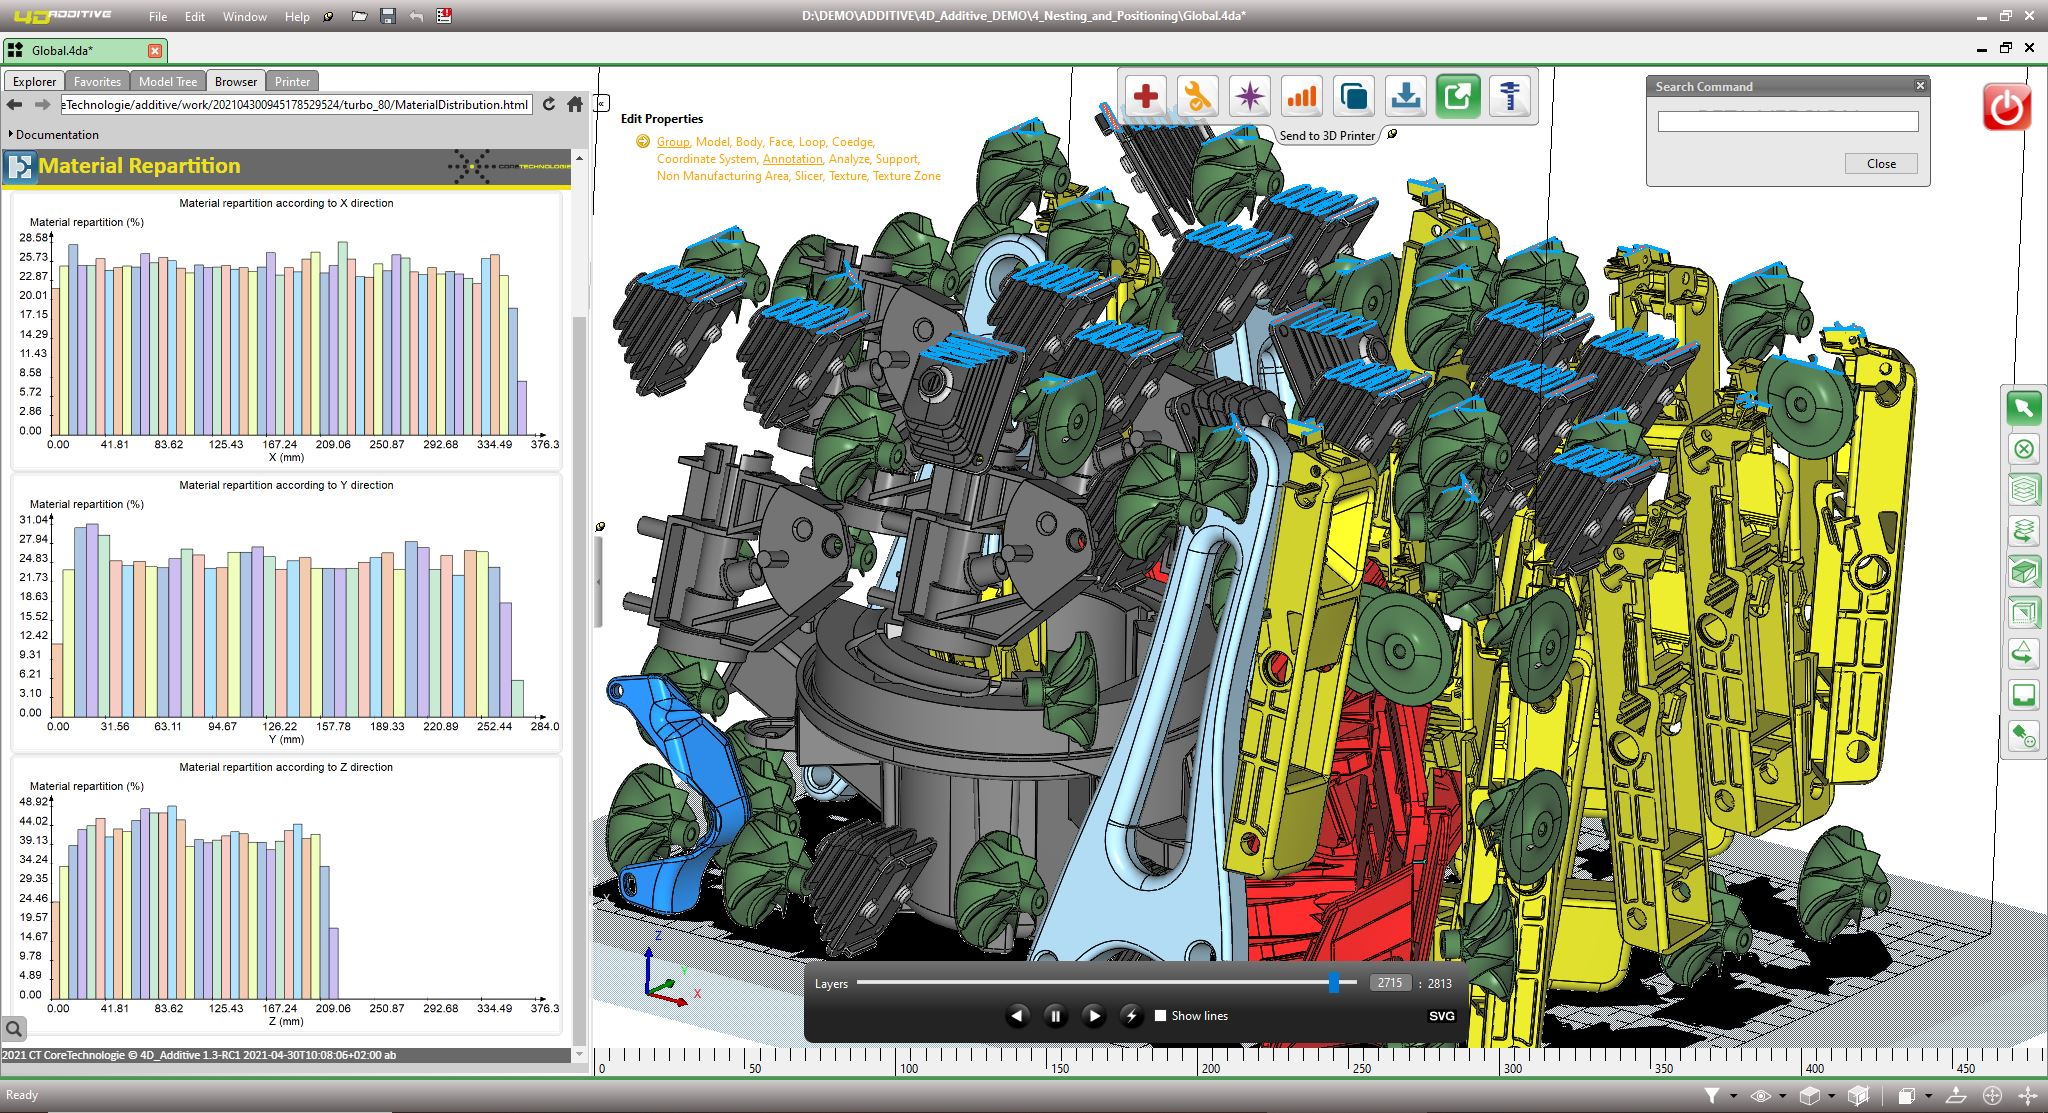 Version 1.3 of 4D_Additive software optimizes small batch production of 3D printed parts Photo via CoreTechnologie GmbH.